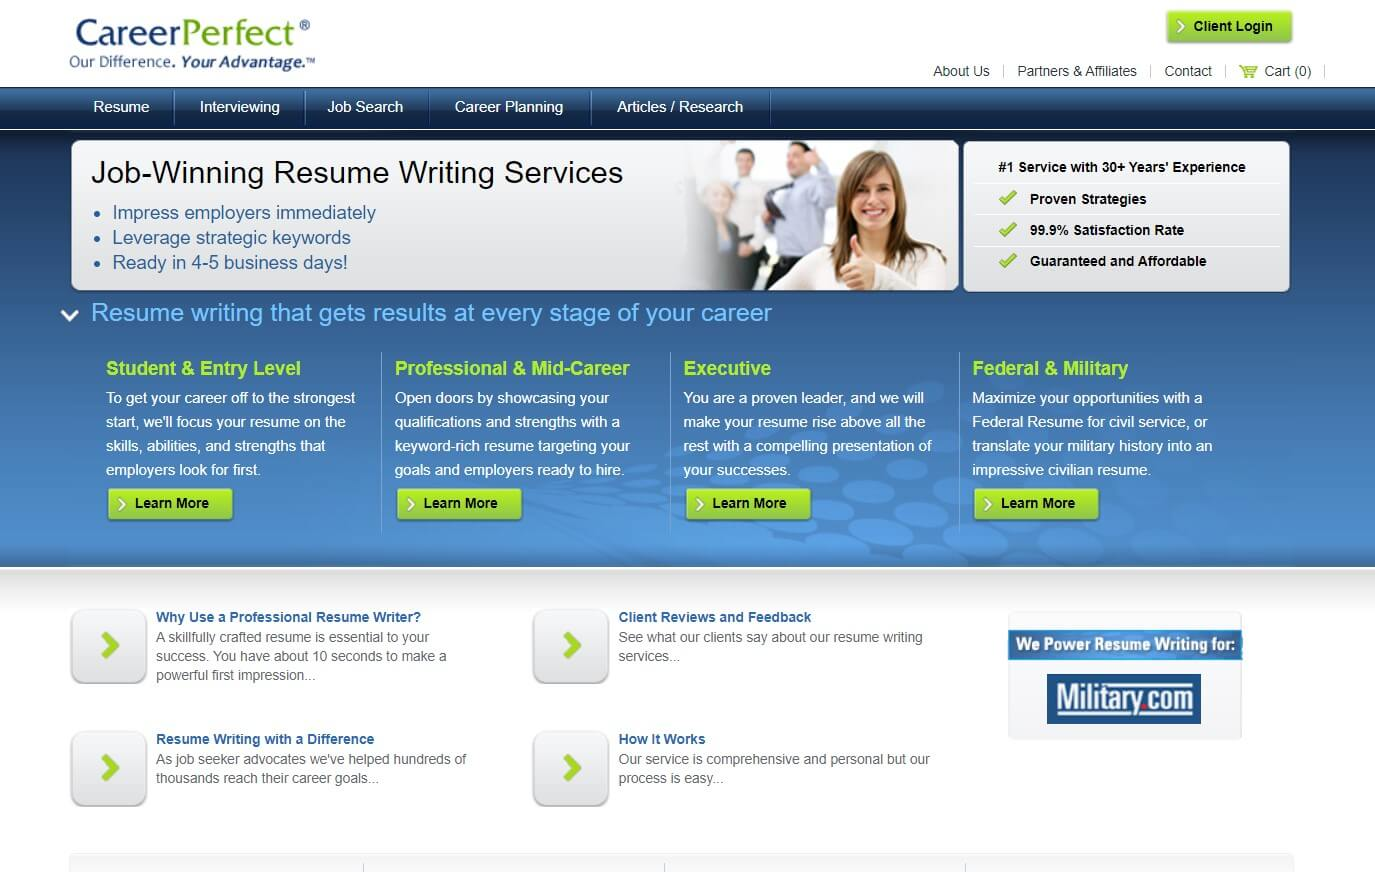 Careerperfect.com overview